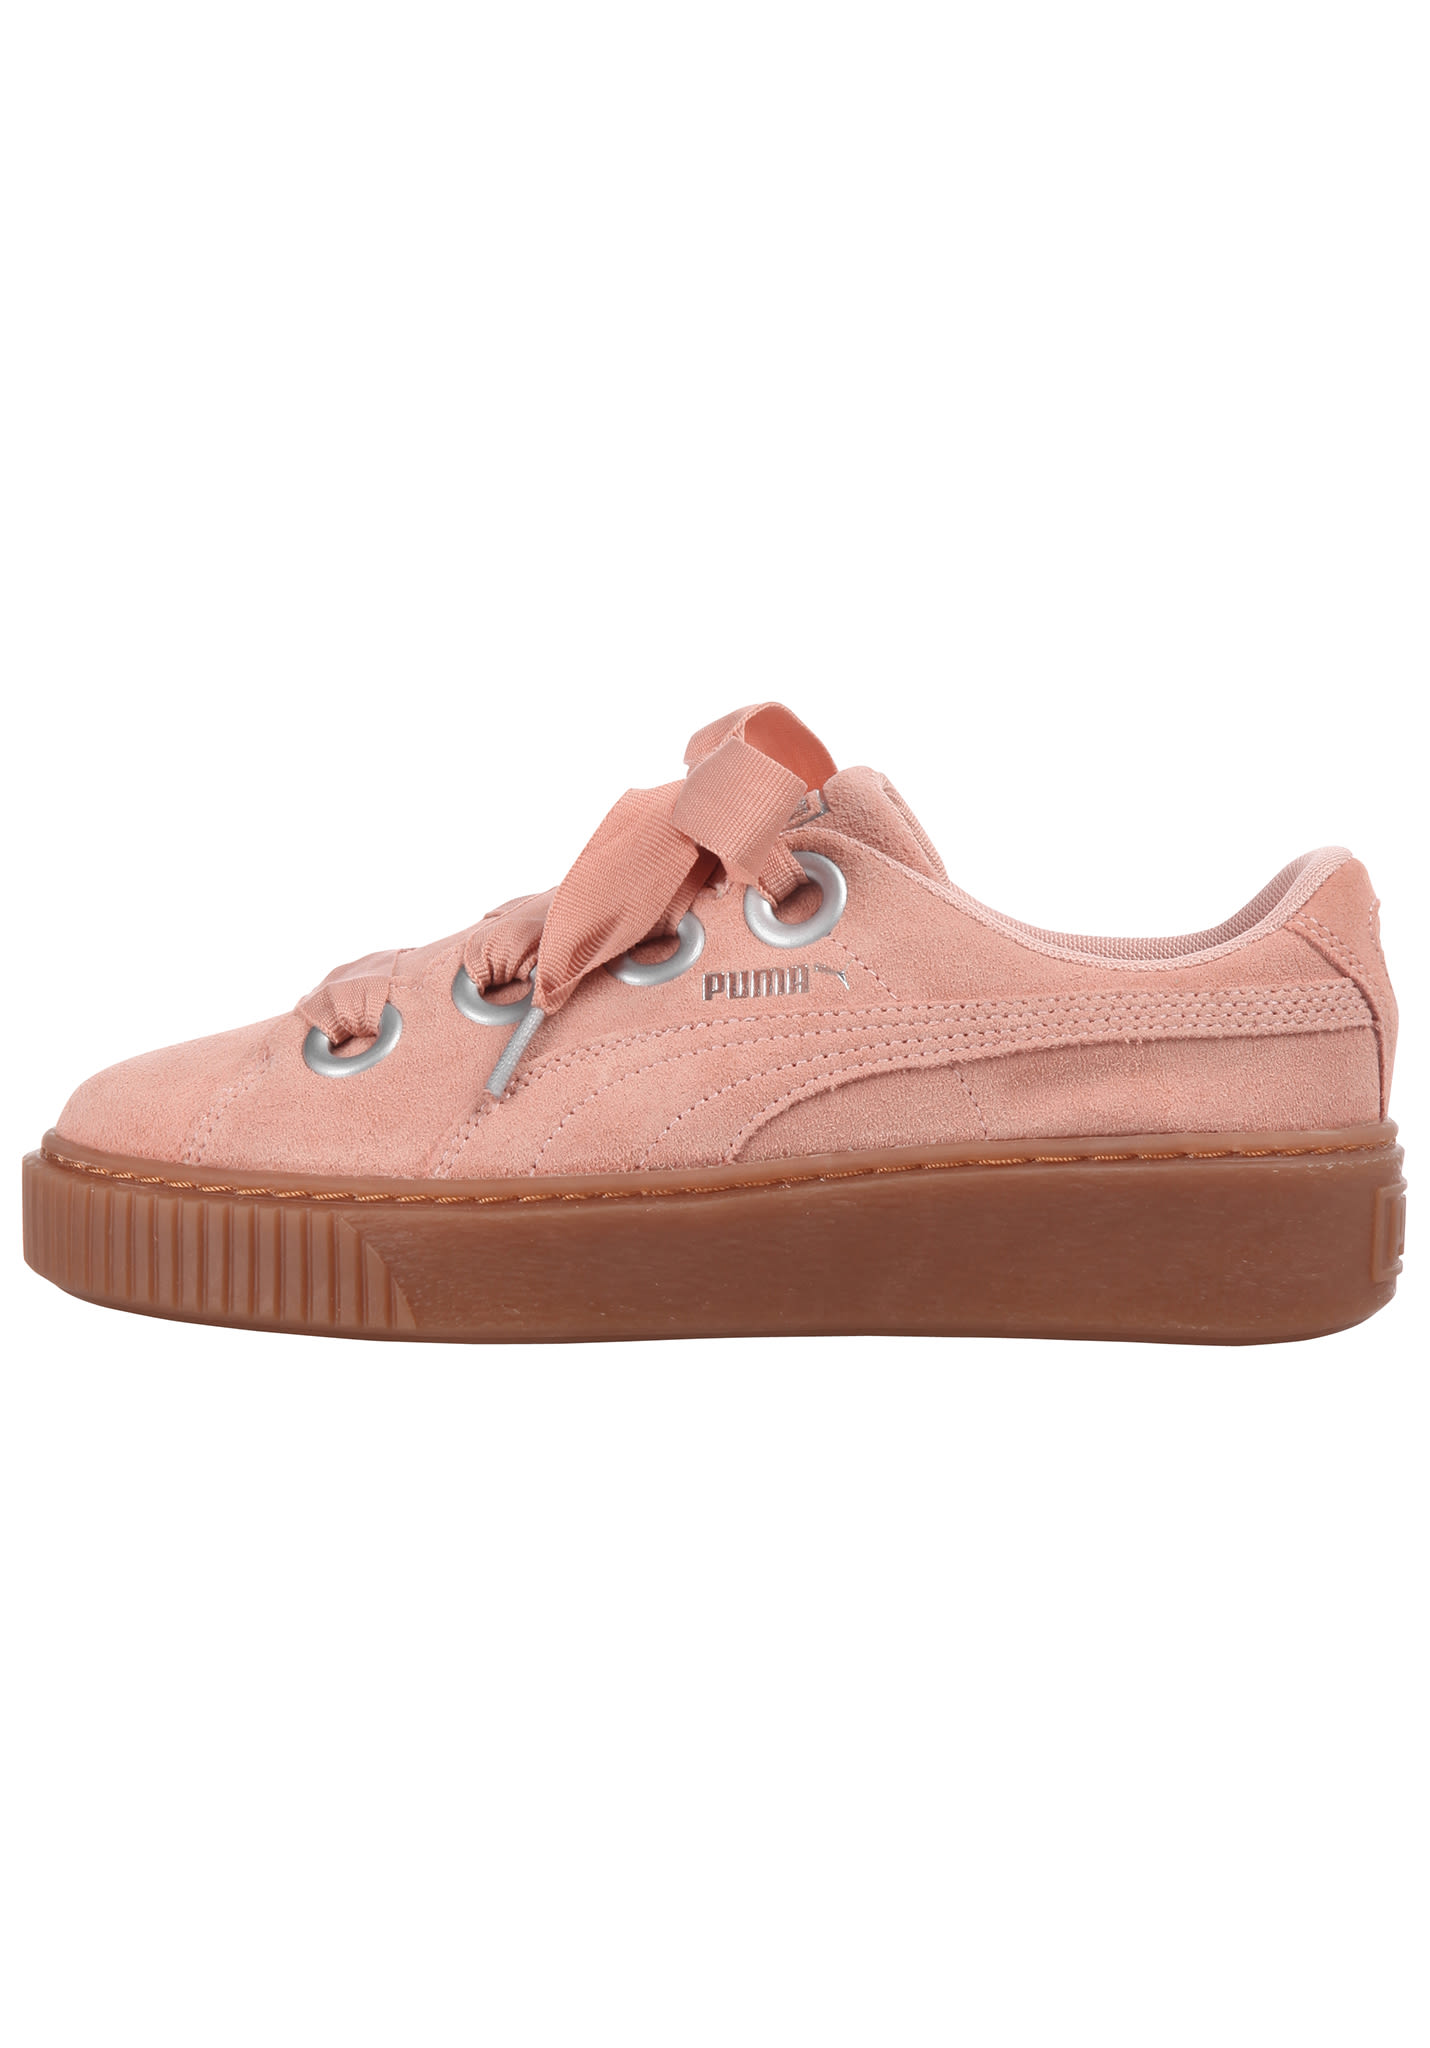 f5a2f75d06d Puma Platform Kiss Suede - Sneakers for Women - Pink - Planet Sports